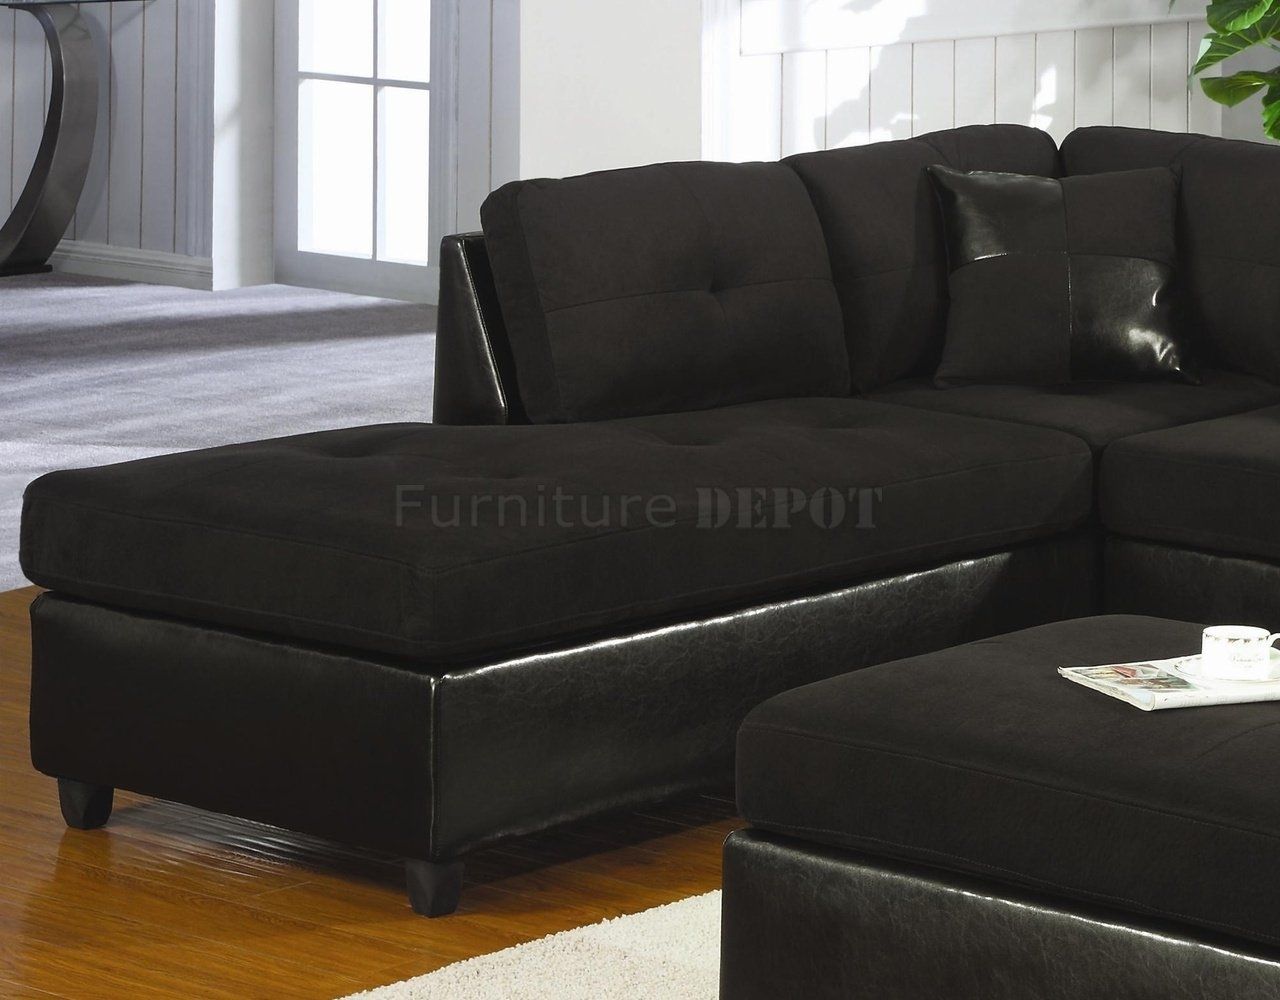 Black Microsuede Couch | Microfiber & Faux Leather Contemporary Inside Black Sectional Sofas (View 4 of 10)